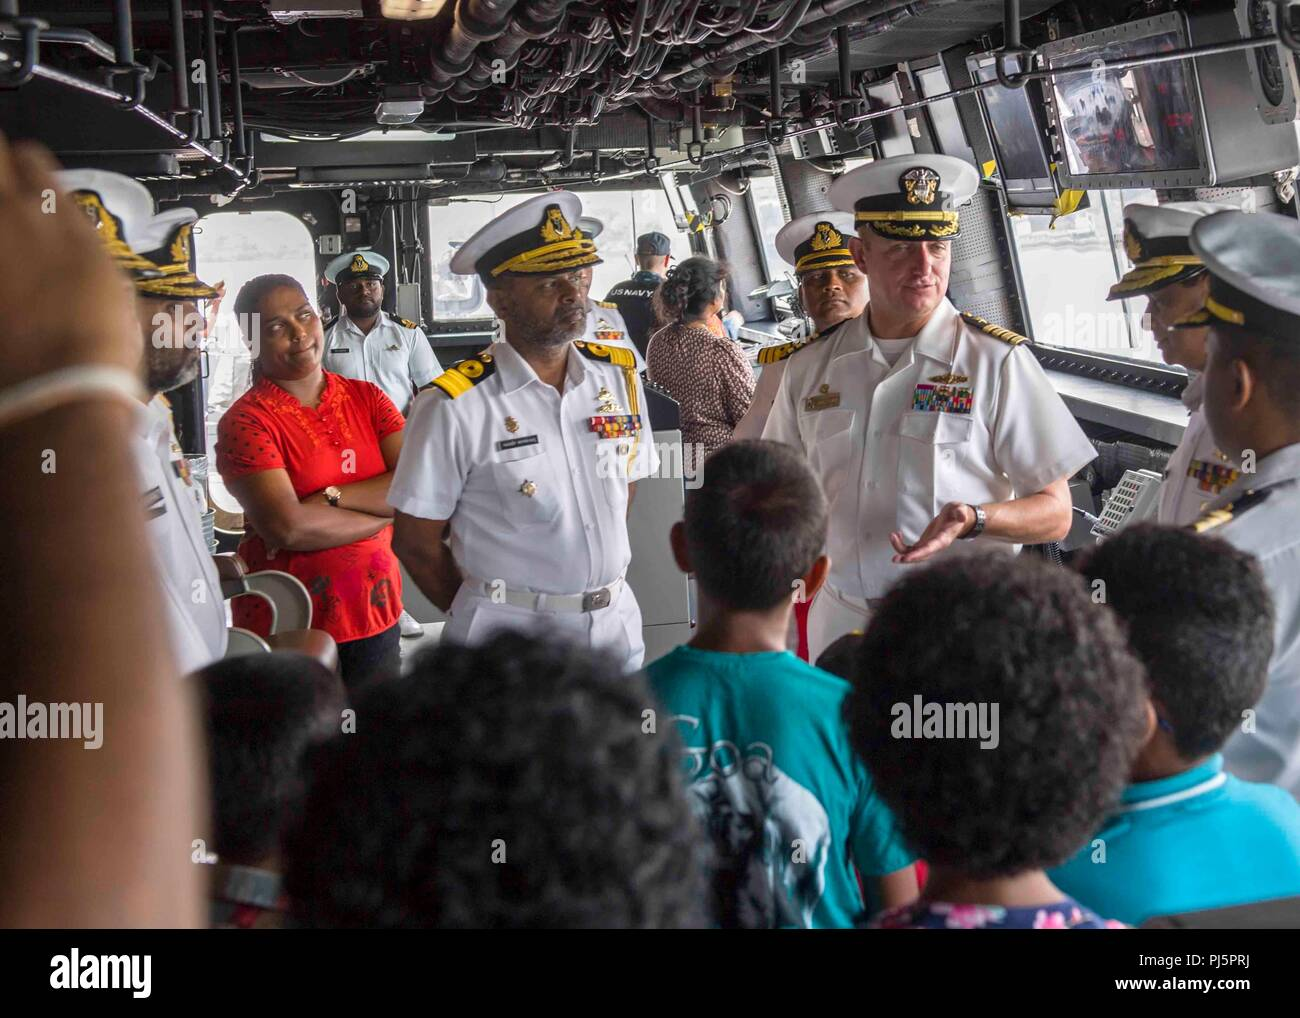 180825-N-PH222-0393 TRINCOMALEE, SRI LANKA (Aug. 25, 2018) Capt. Dennis Jacko, commanding officer of San Antonio-class amphibious transport dock USS Anchorage (LPD 23), from Sayreville, N.J., gives a tour to distinguished visitors of the Sri Lanka navy and their families during a regularly scheduled deployment of the Essex Amphibious Ready Group (ARG) and 13th Marine Expeditionary Unit (MEU). Anchorage and the embarked Marines of the 13th MEU are conducting a theater security cooperation exercise with the Sri Lankan navy and marines. Part of a growing U.S.-Sri Lanka naval partnership, the exer - Stock Image